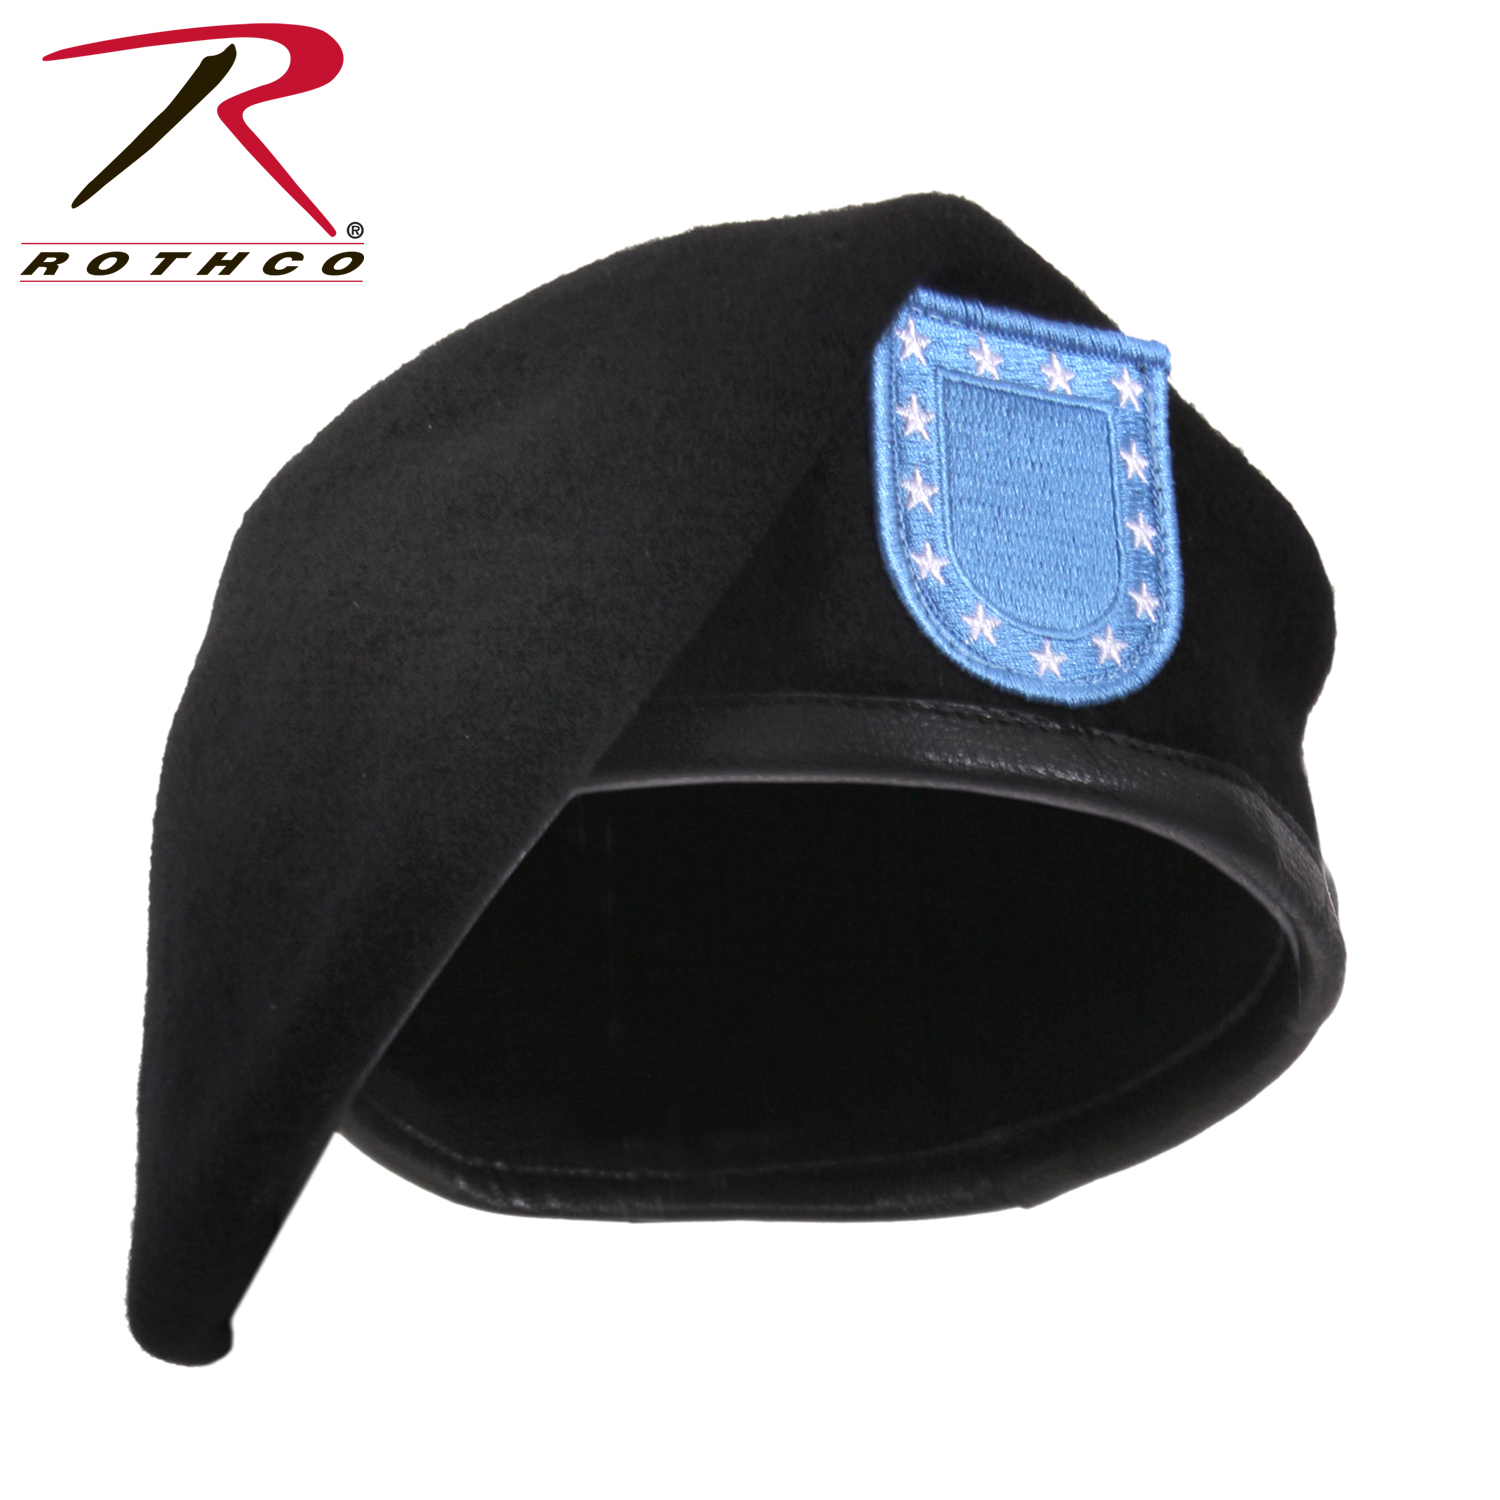 2579807dc4379 Rothco Inspection Ready Black Beret With Flash